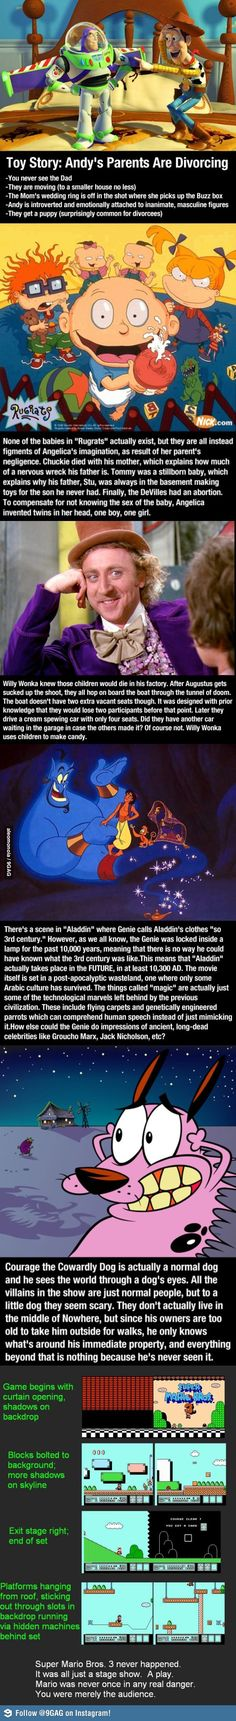 My childhood has just been ruined.